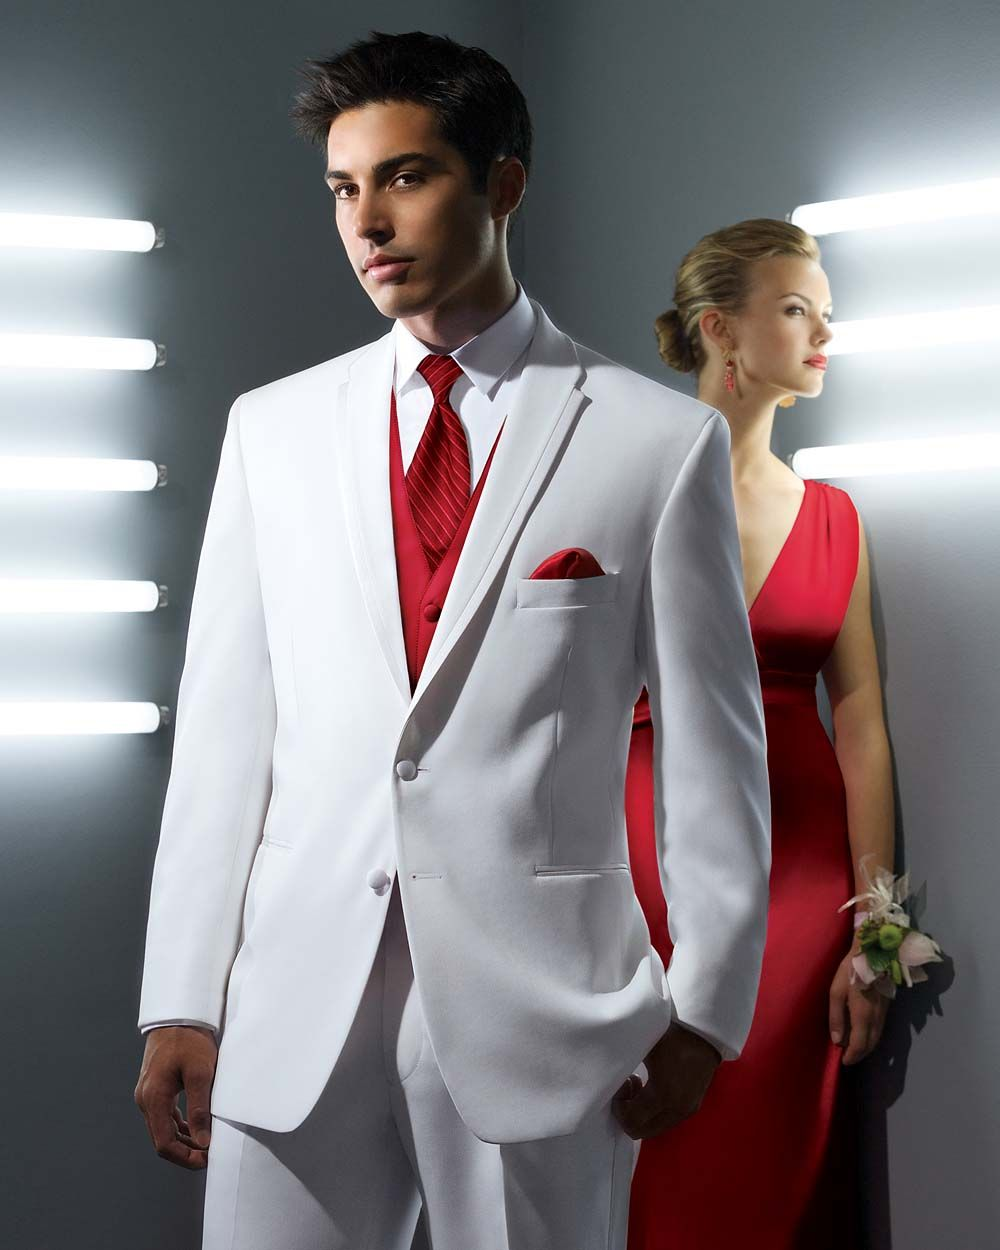 Fancy Grooms Attire Wedding Dresses and Gowns White and Red Dresses Bridal Gowns